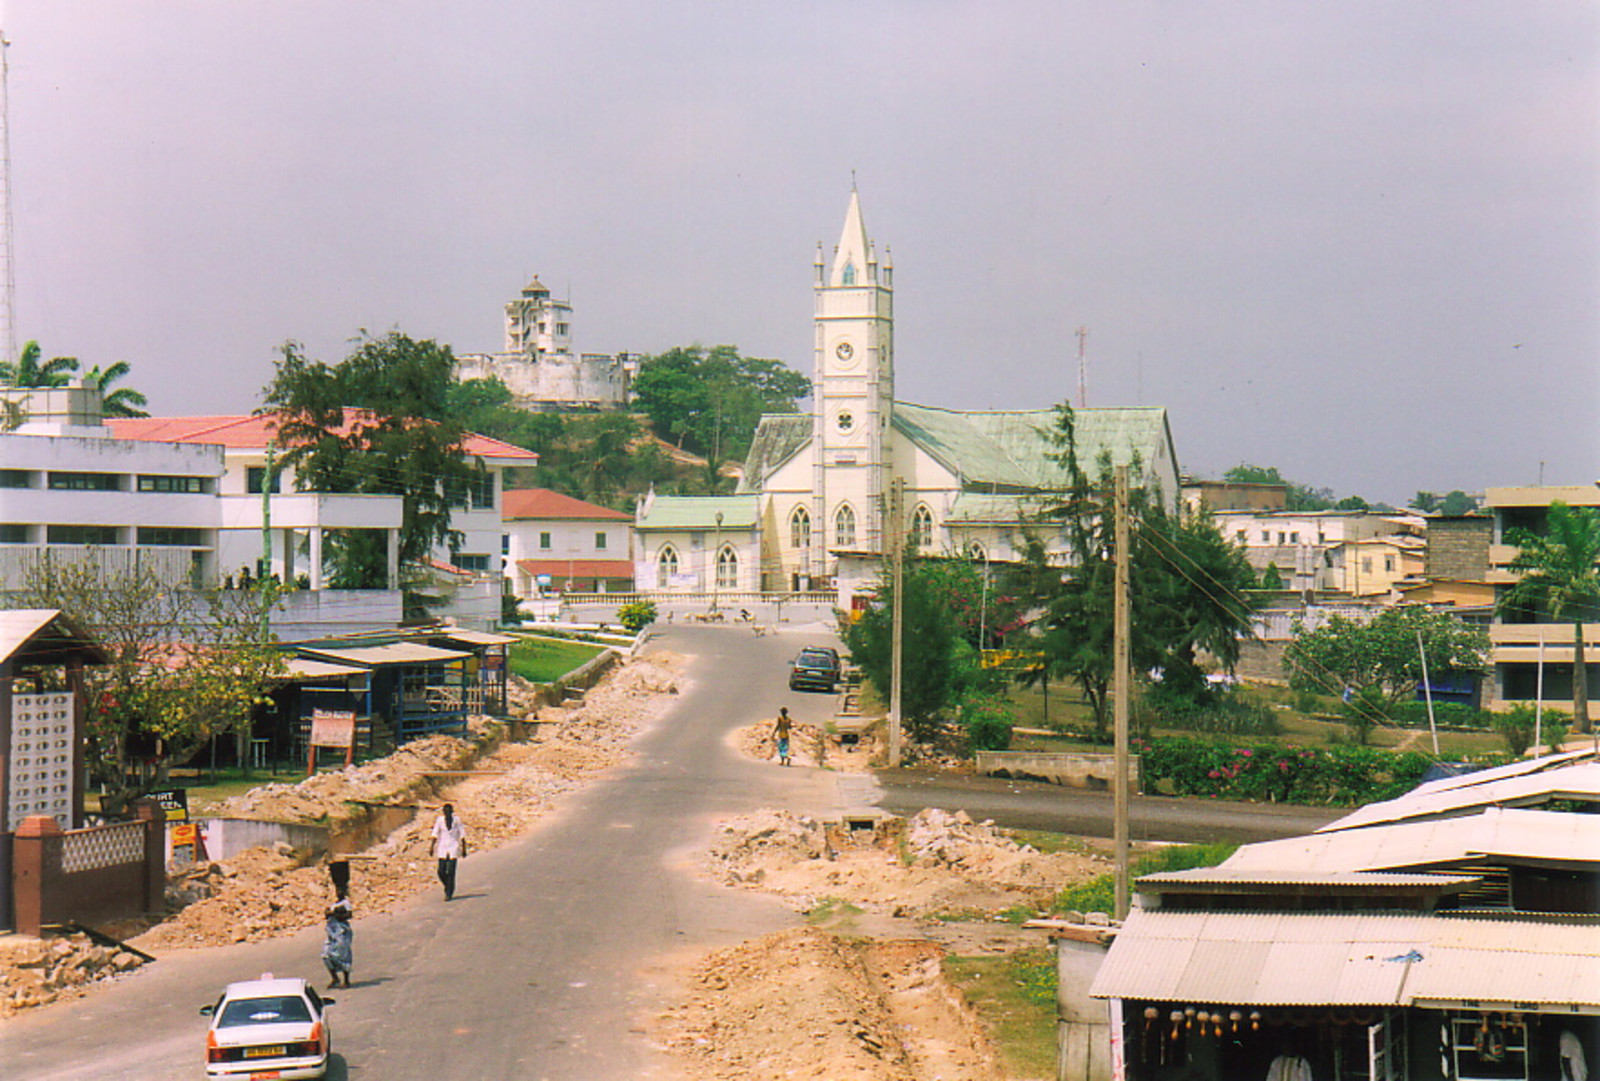 Fort William and Chapel Square from Cape Coast Castle